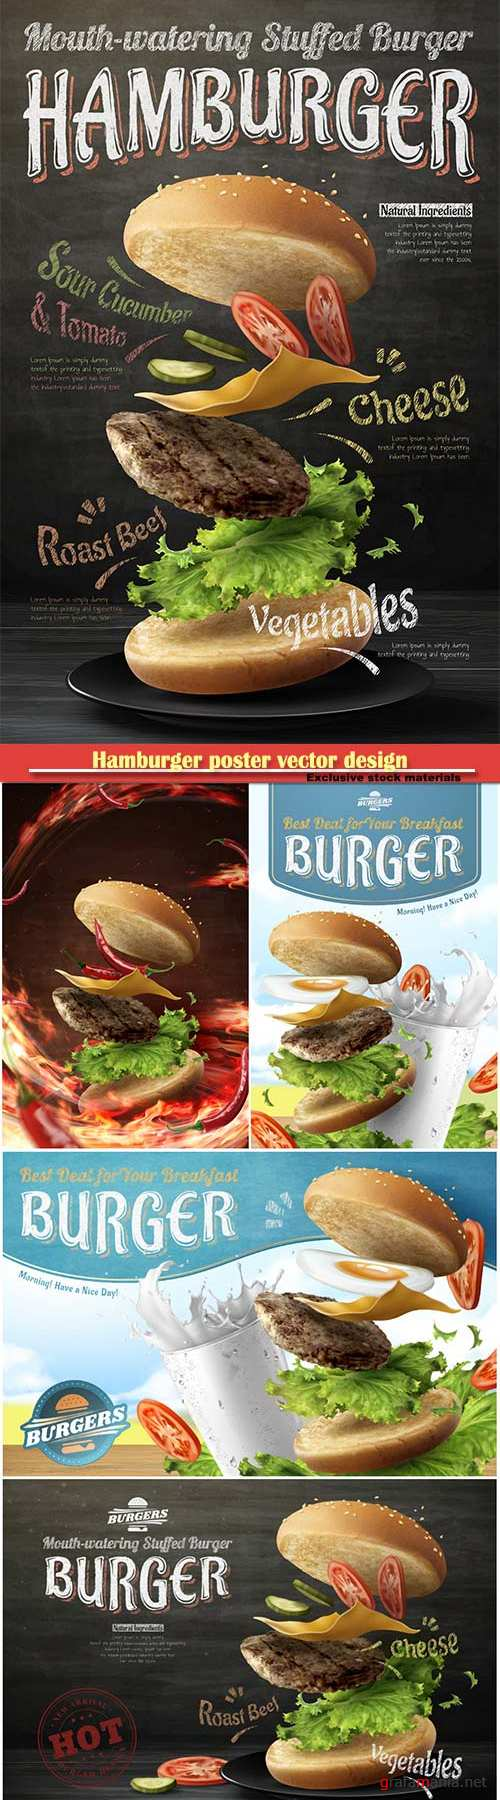 Hamburger poster vector design